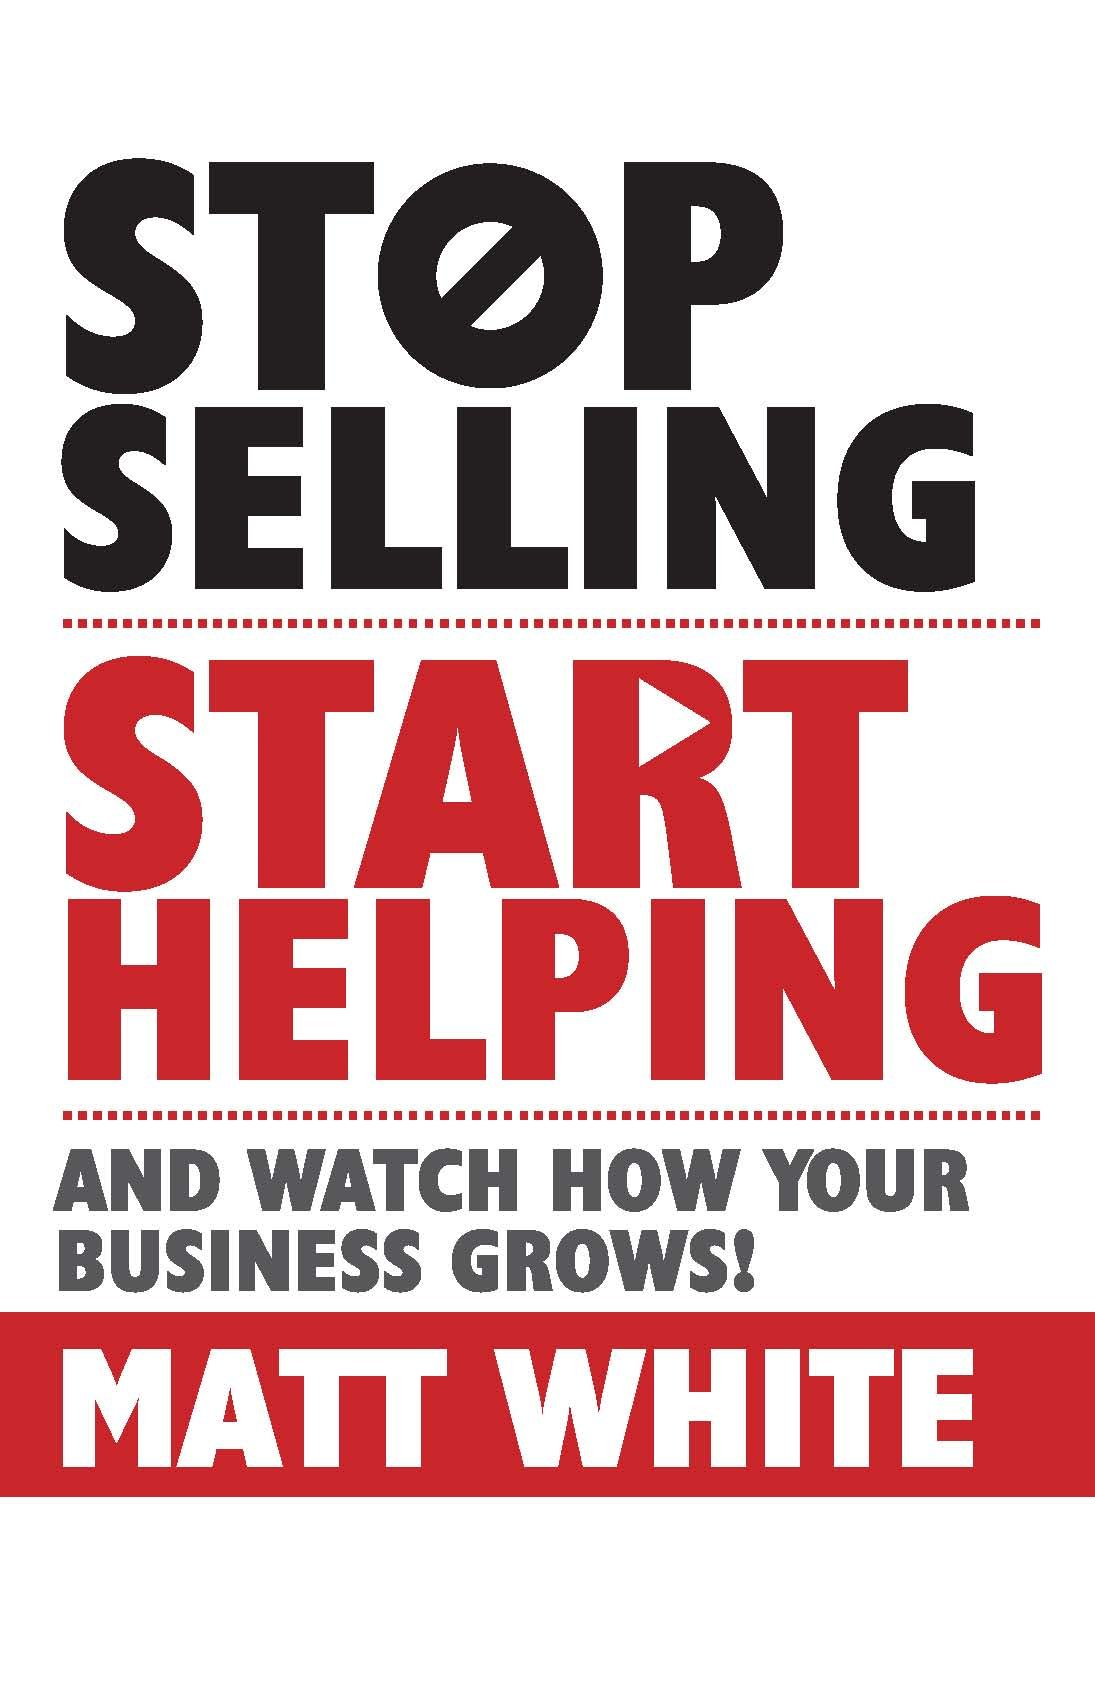 Stop selling Start helping